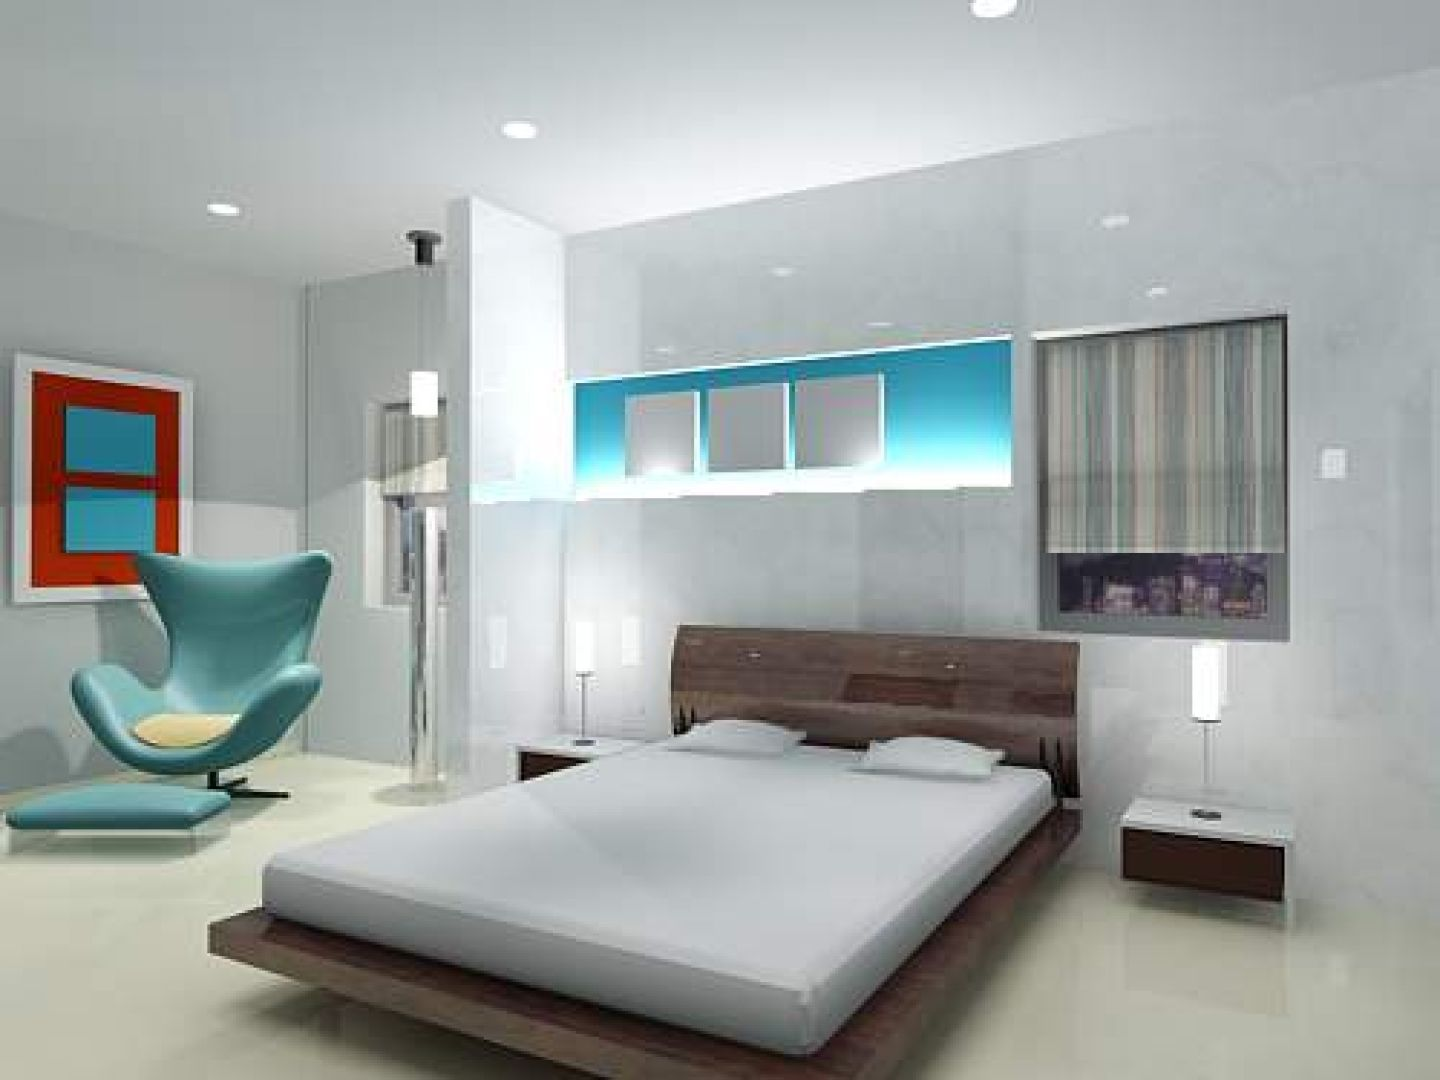 Interior Designed Bedrooms Awesome תוצאת תמונה עבור Warm Modern Interior Design  Ideas For The Design Ideas